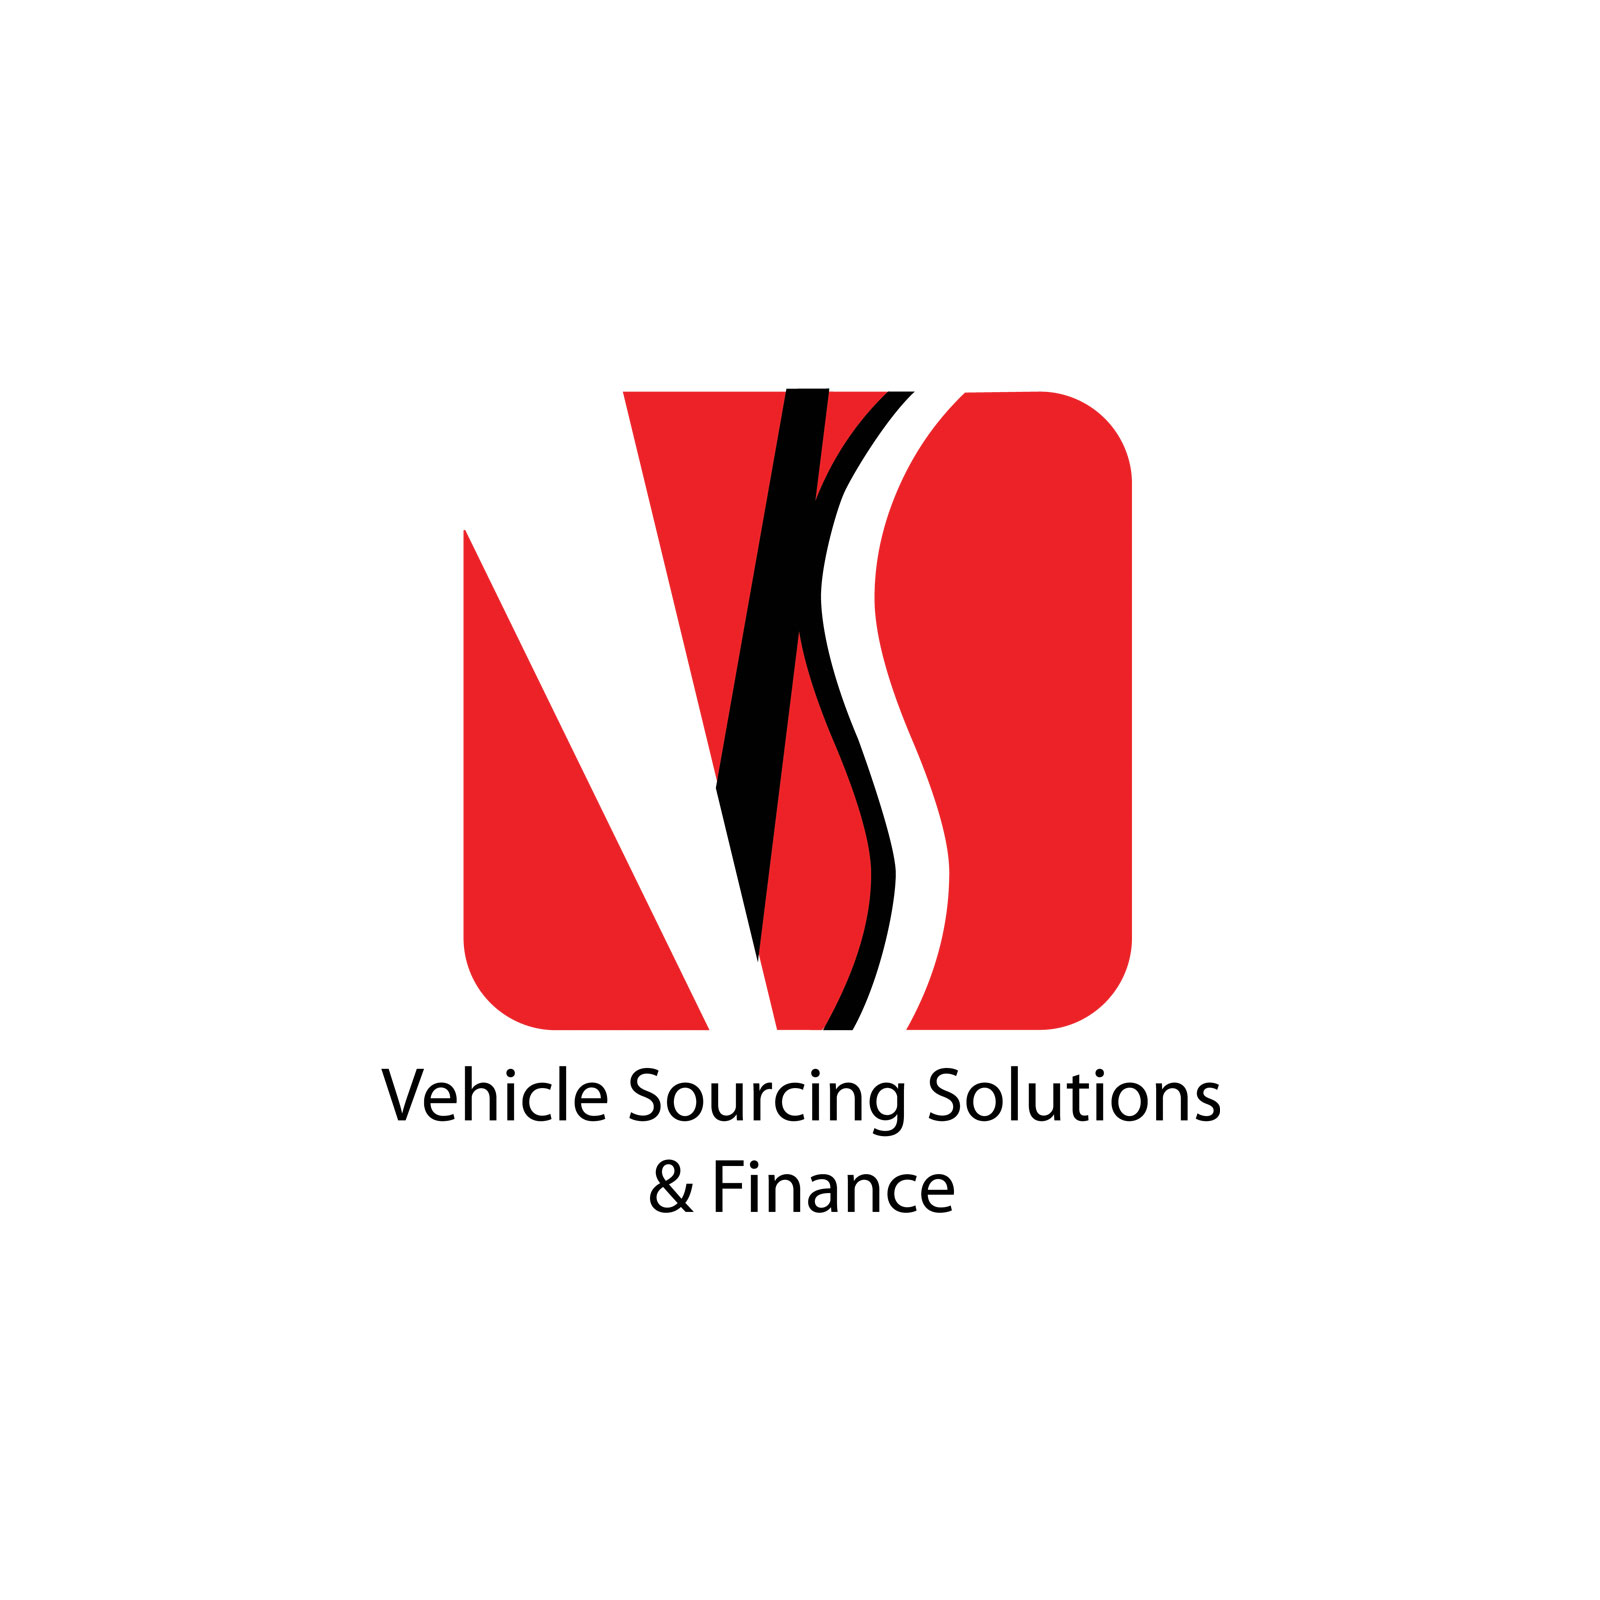 Vehicle Sourcing Solutions and Finance